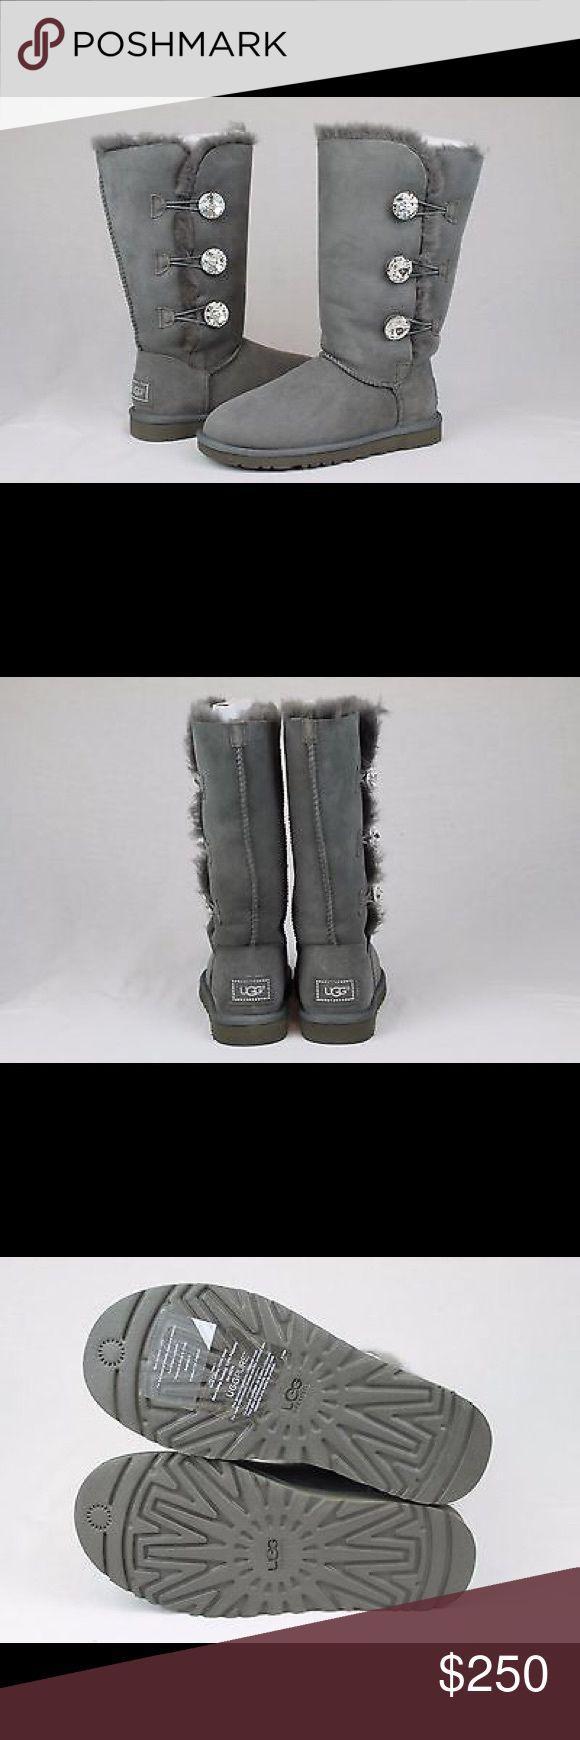 UGG BAILEY BLING TRIPLET BOOT, CHARCOAL GREY👢👢👢 Brand new Ugg Australia Bailey Bling Button Triplet, Charcoal Grey, unused, unworn. Purchased directly from UGG, has UGG sticker on sole and UGG authenticating materials in box, along with additional small crystals. Happy to ship in UGG box, but will result in higher cost do to additional cost of purchasing large shipping box and additional shipping charges. Please indicate your preference directly in Comments. UGG AUSTRALIA Shoes Winter…